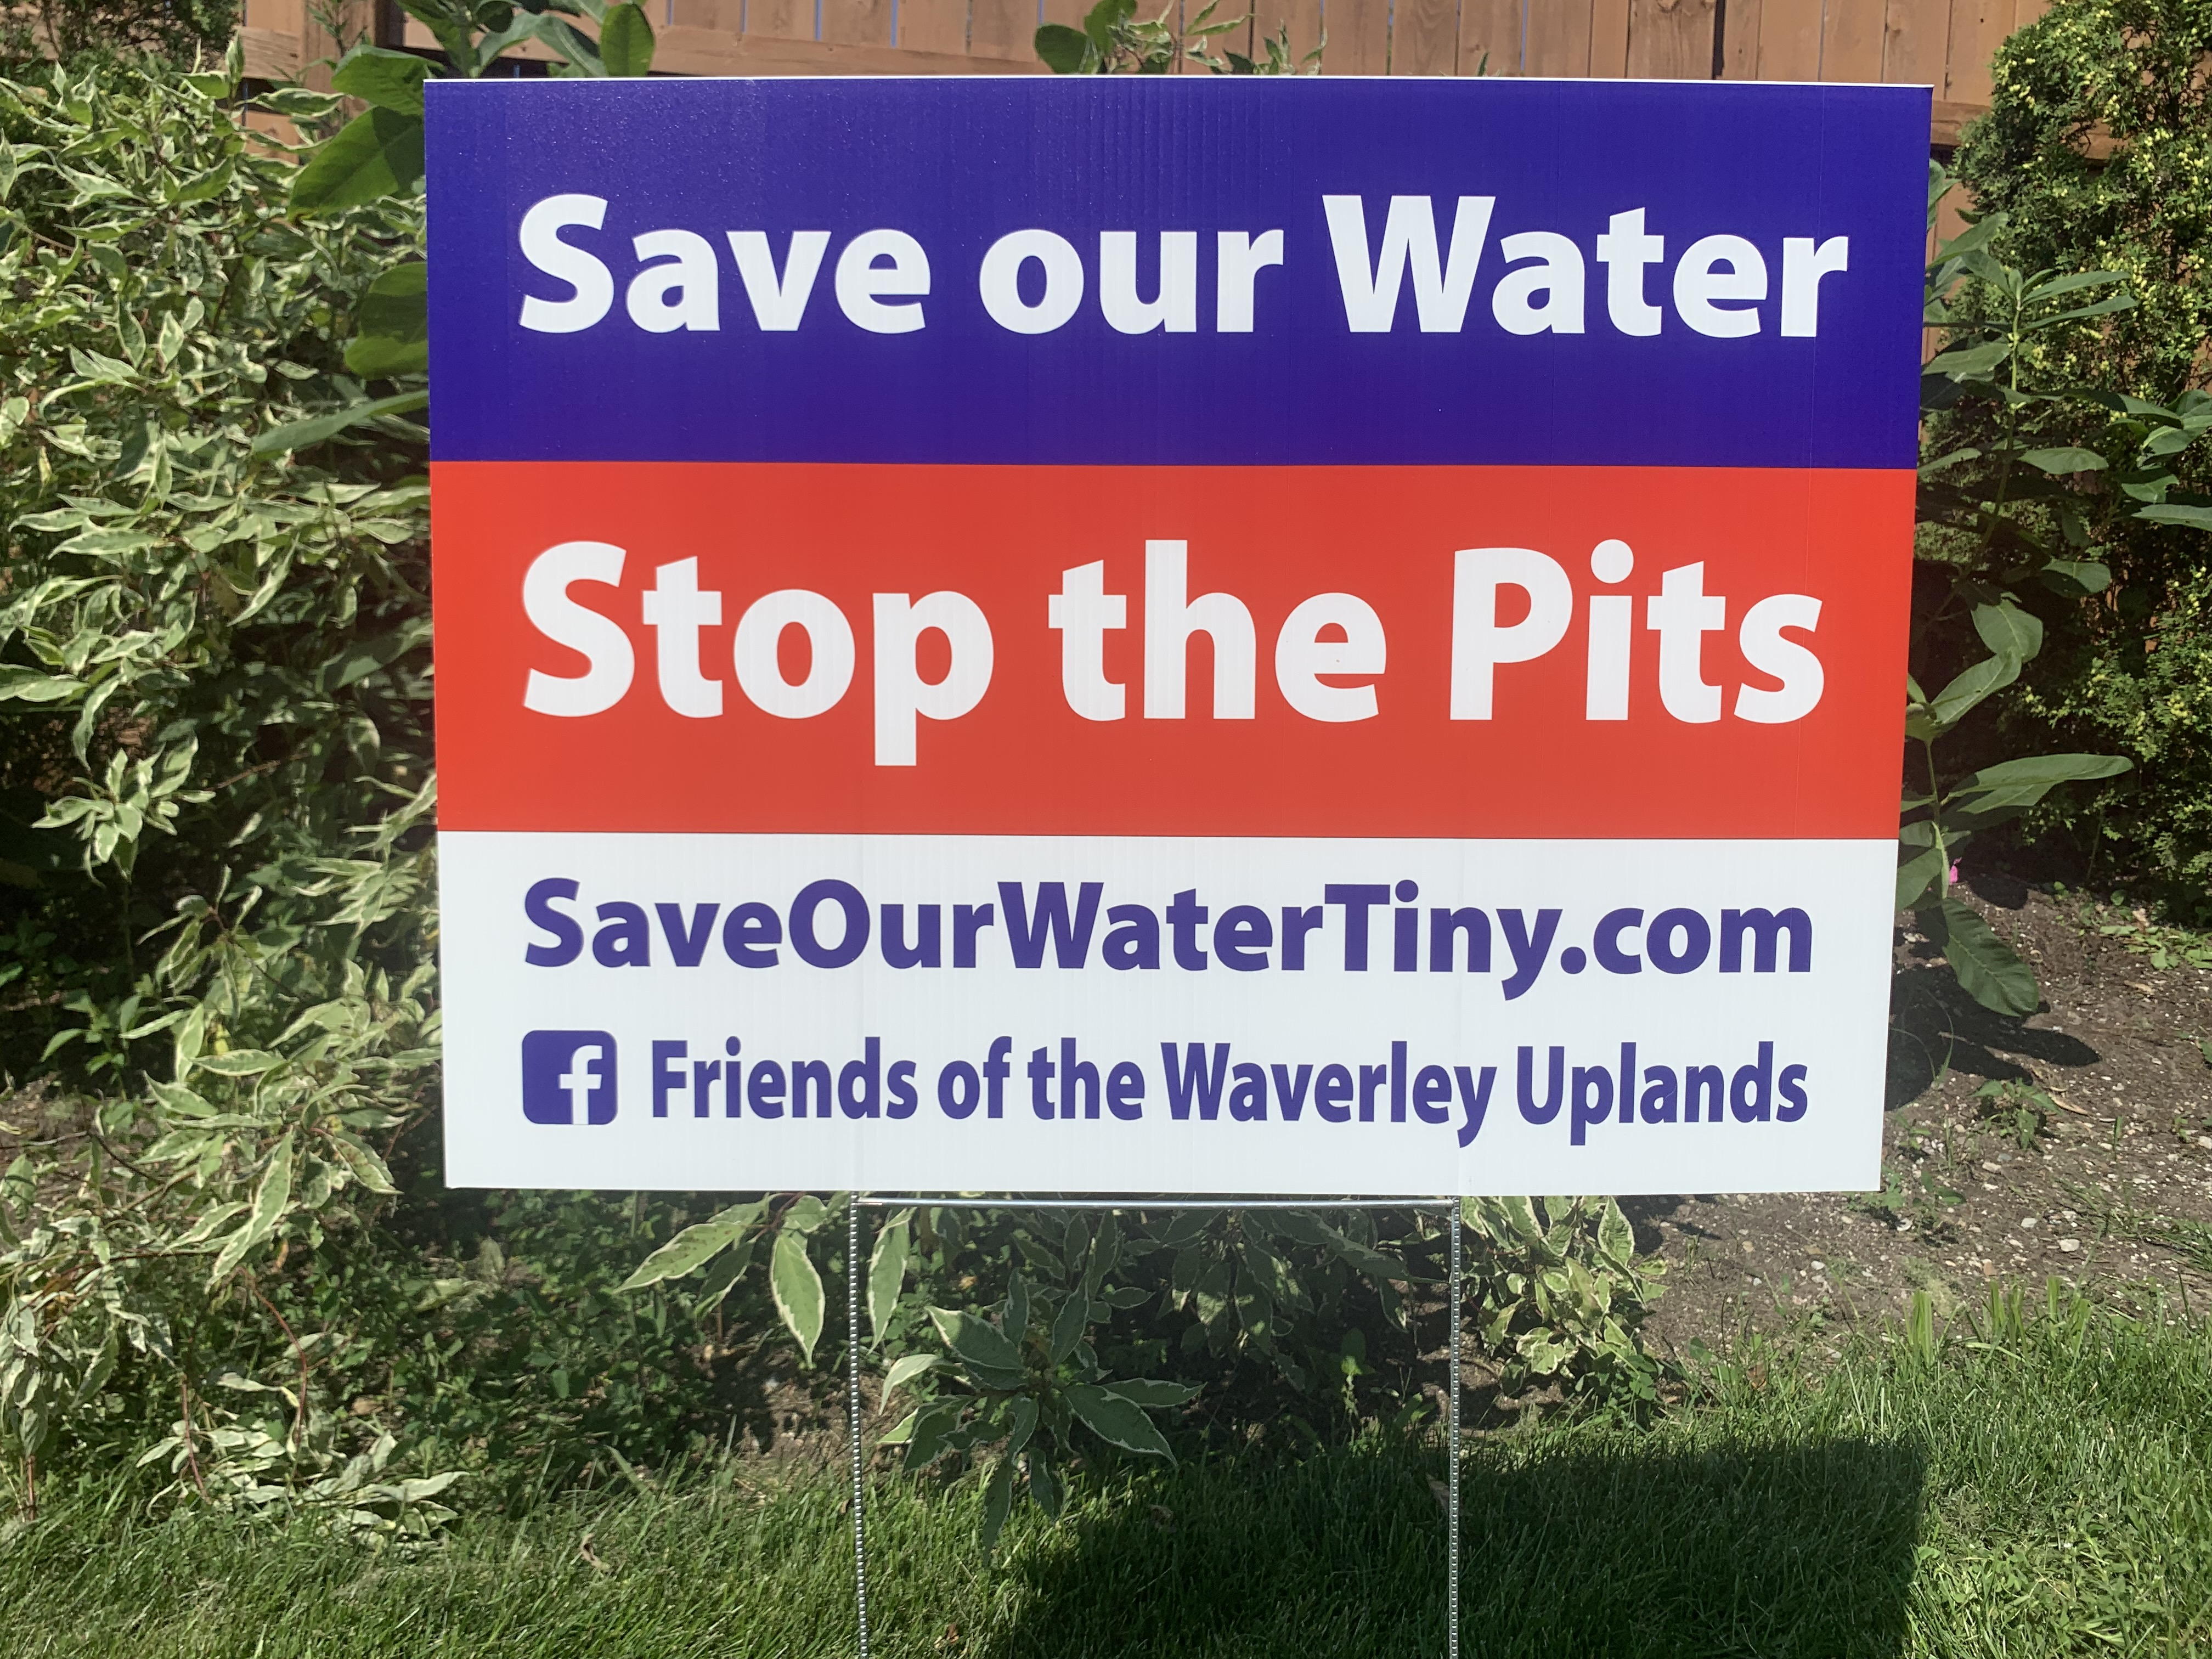 Save Our Water - Stop the Pits